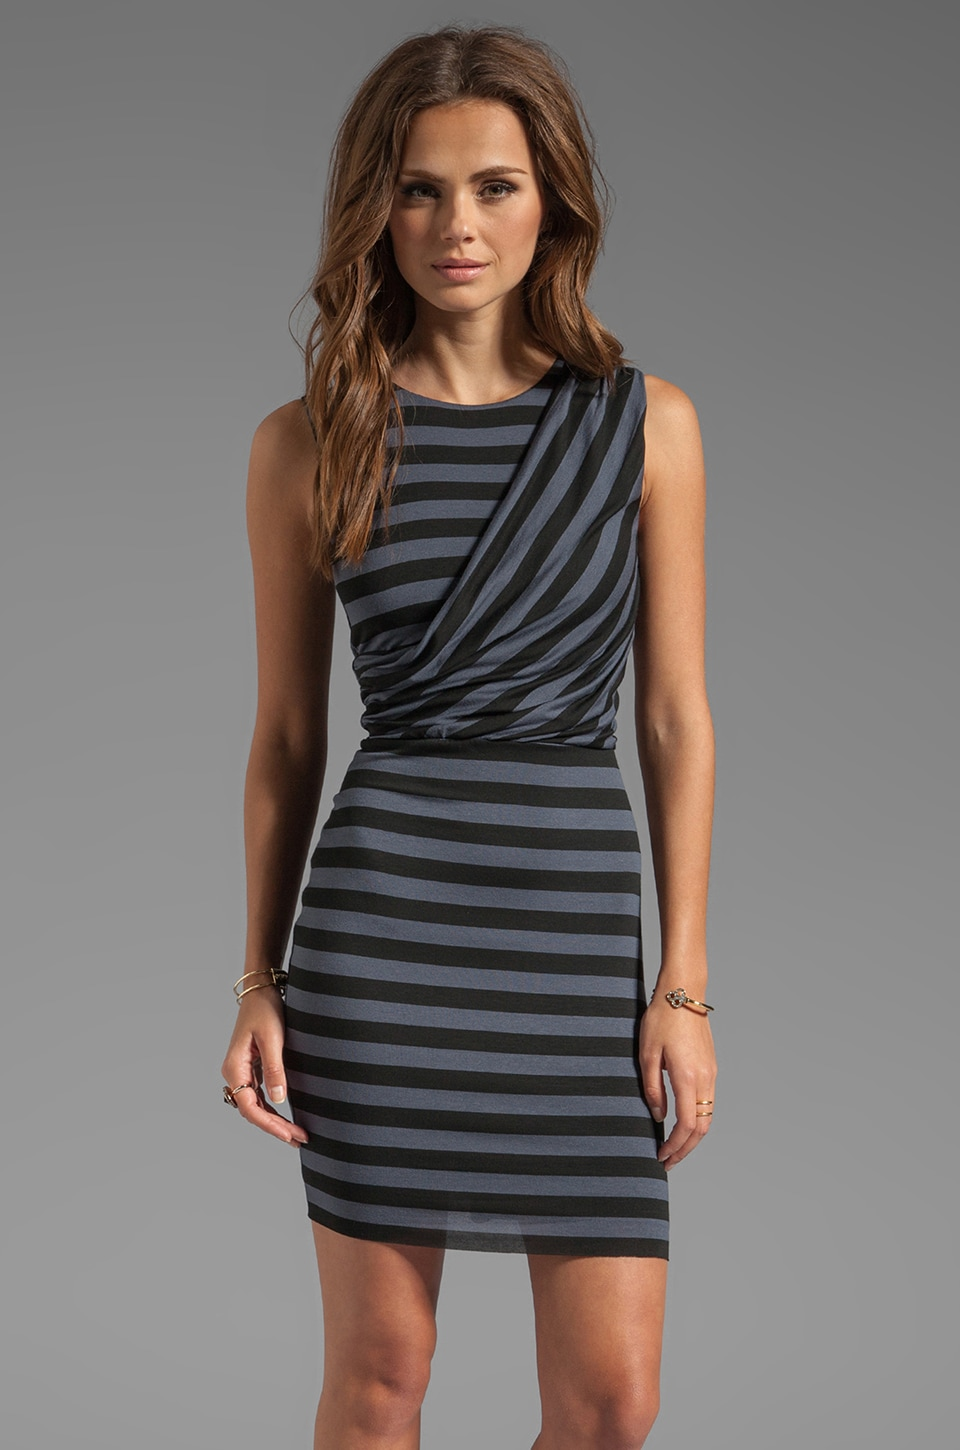 Bailey 44 Dial-Up Stripe Wrap Dress in Black/Grey